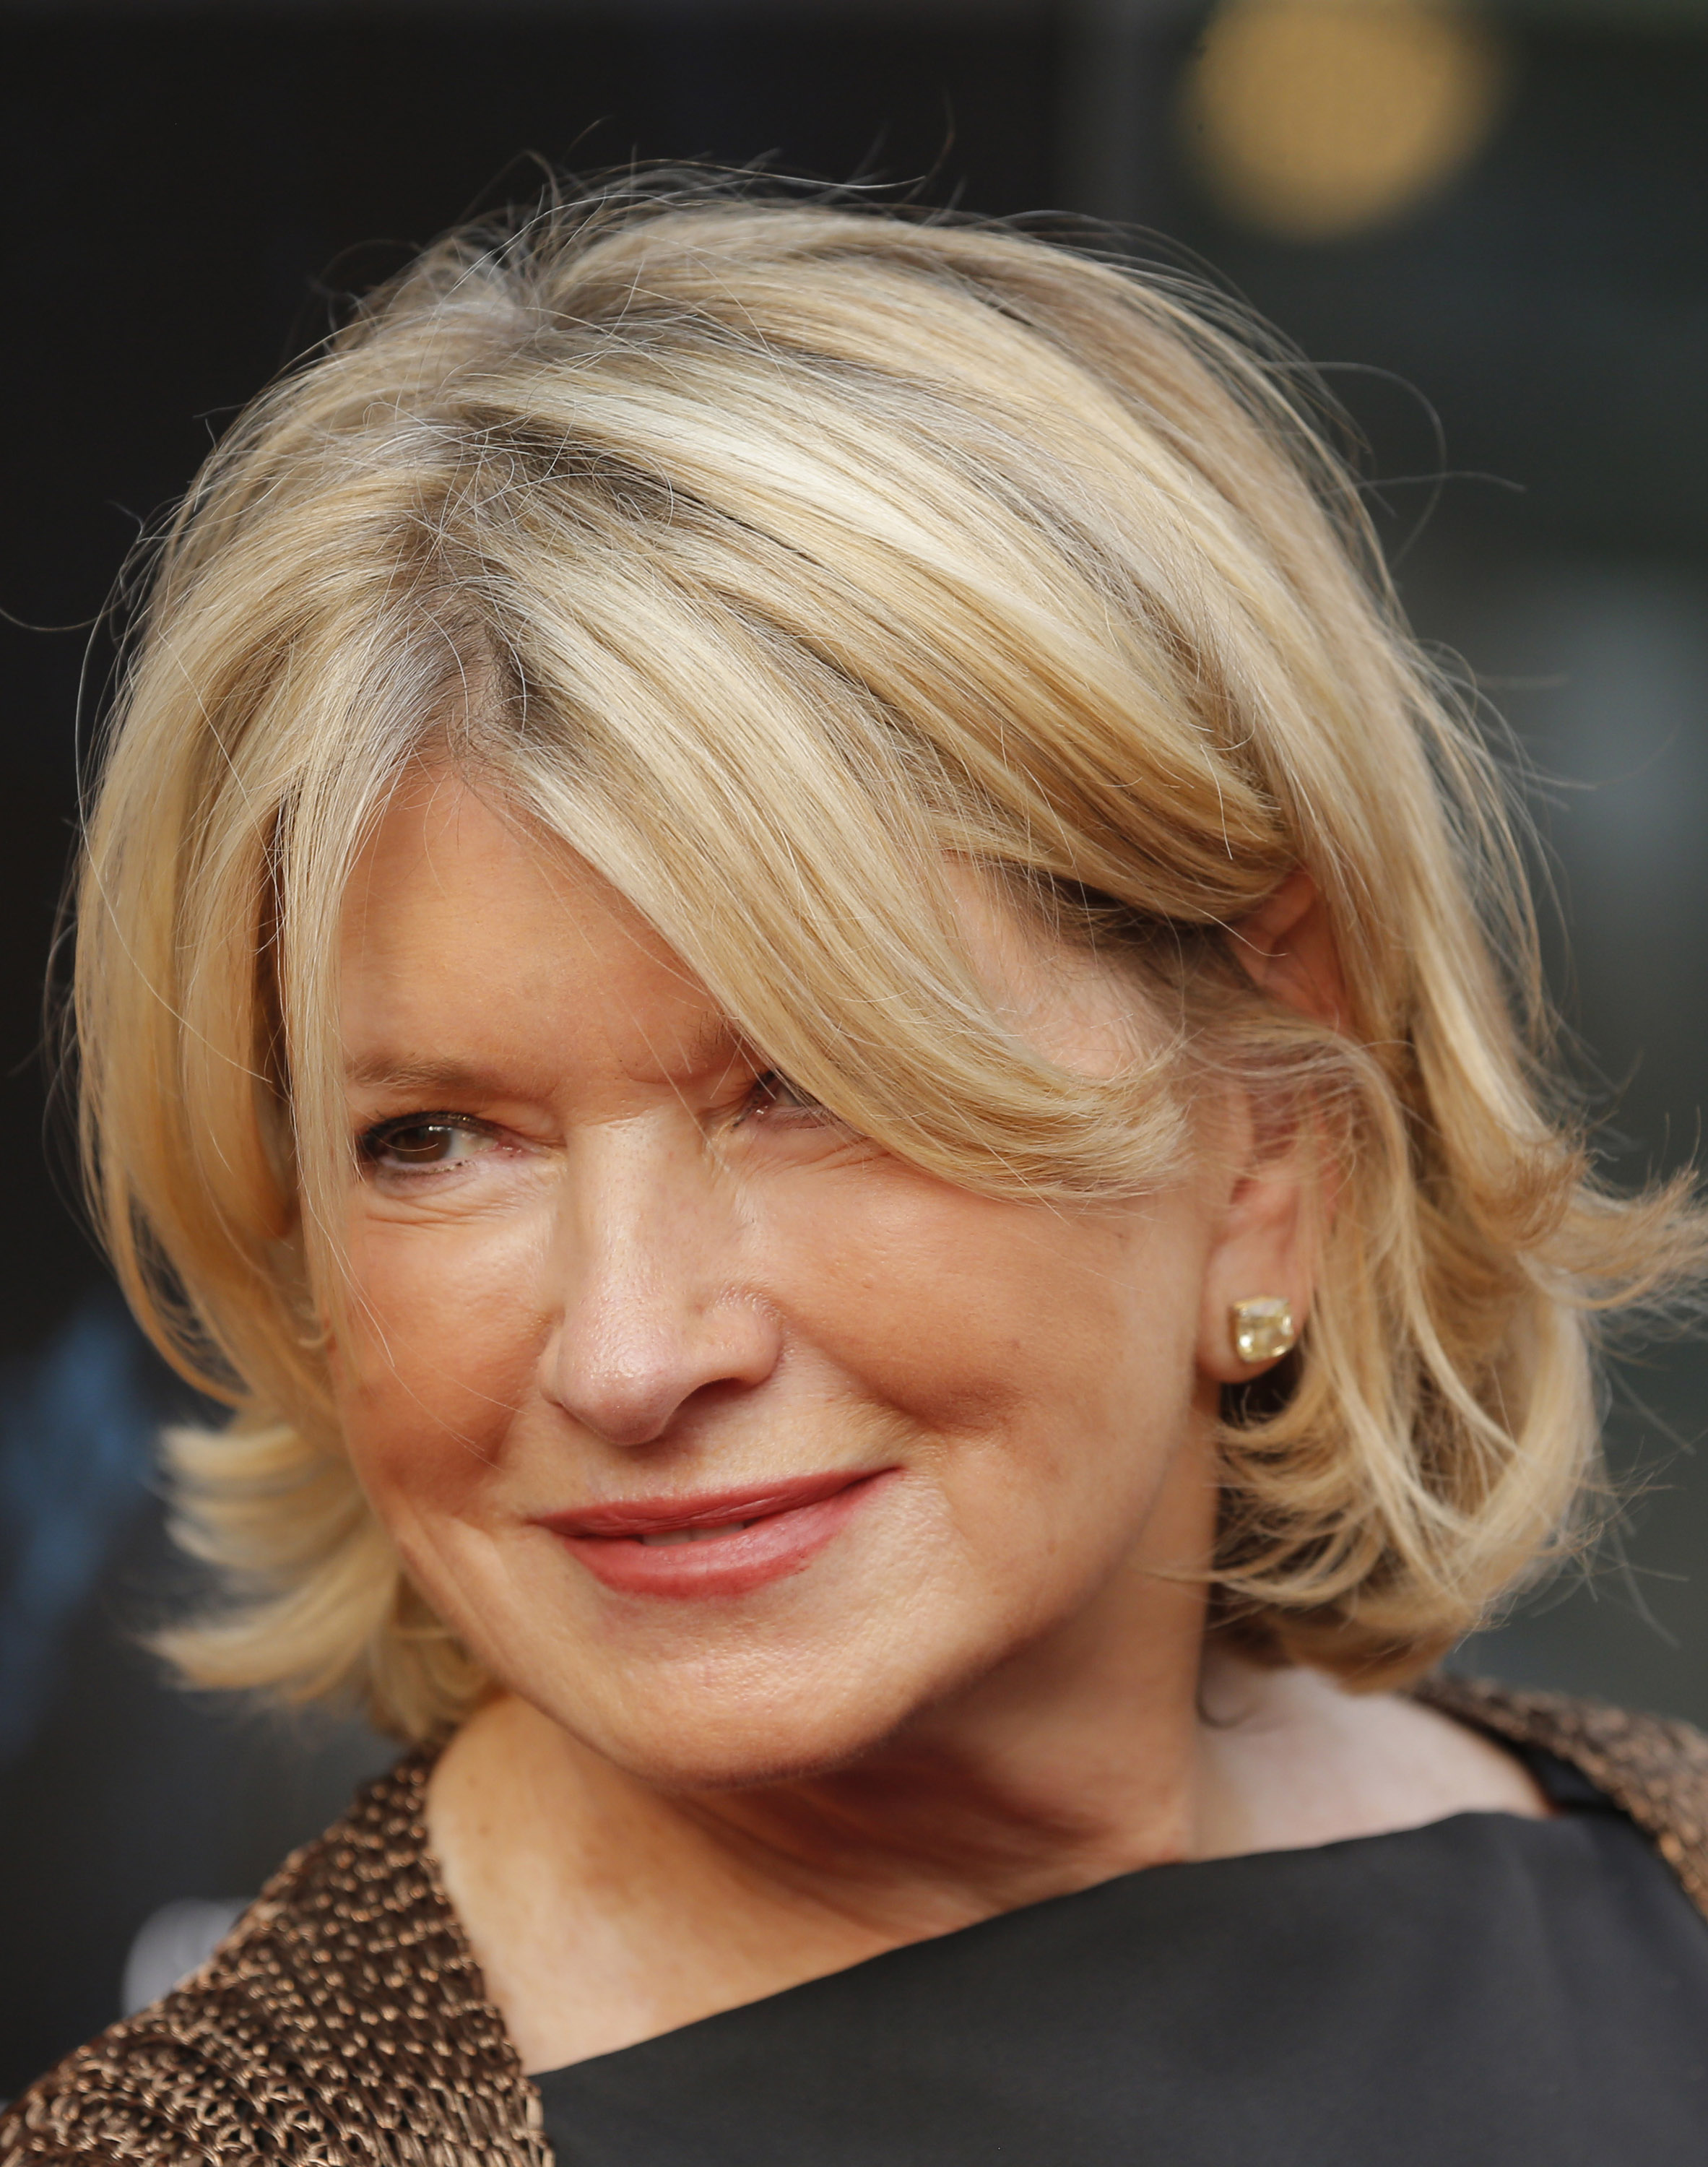 Martha Stewart attends the  Get On Up  premiere at The Apollo Theater on July 21, 2014 in New York City.